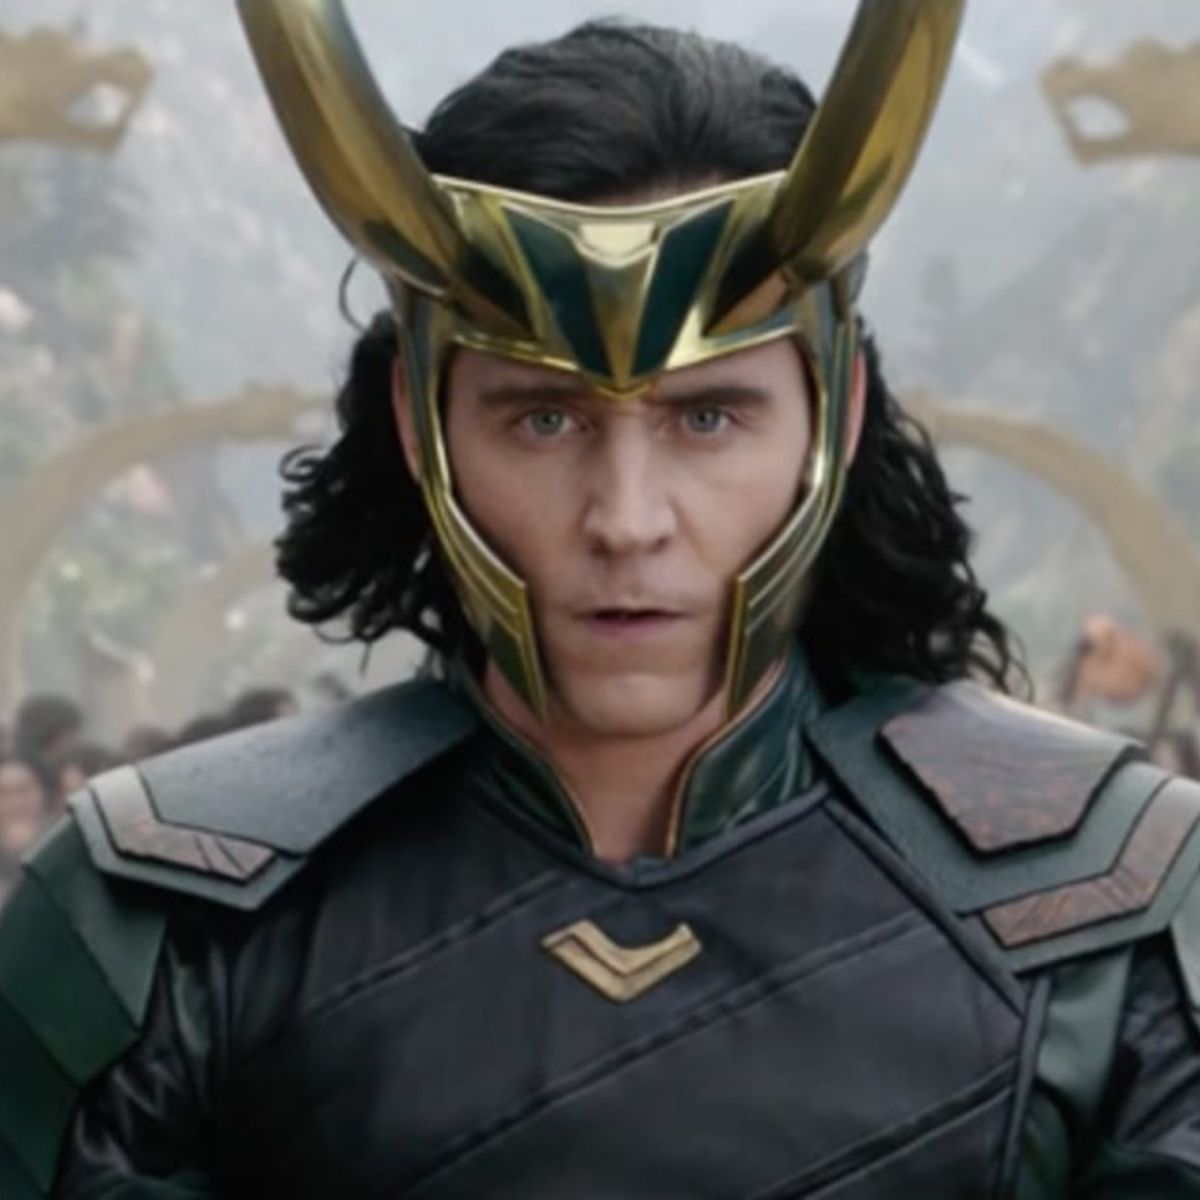 Loki, Scarlet Witch Getting Own Series On Disney's Streaming Service